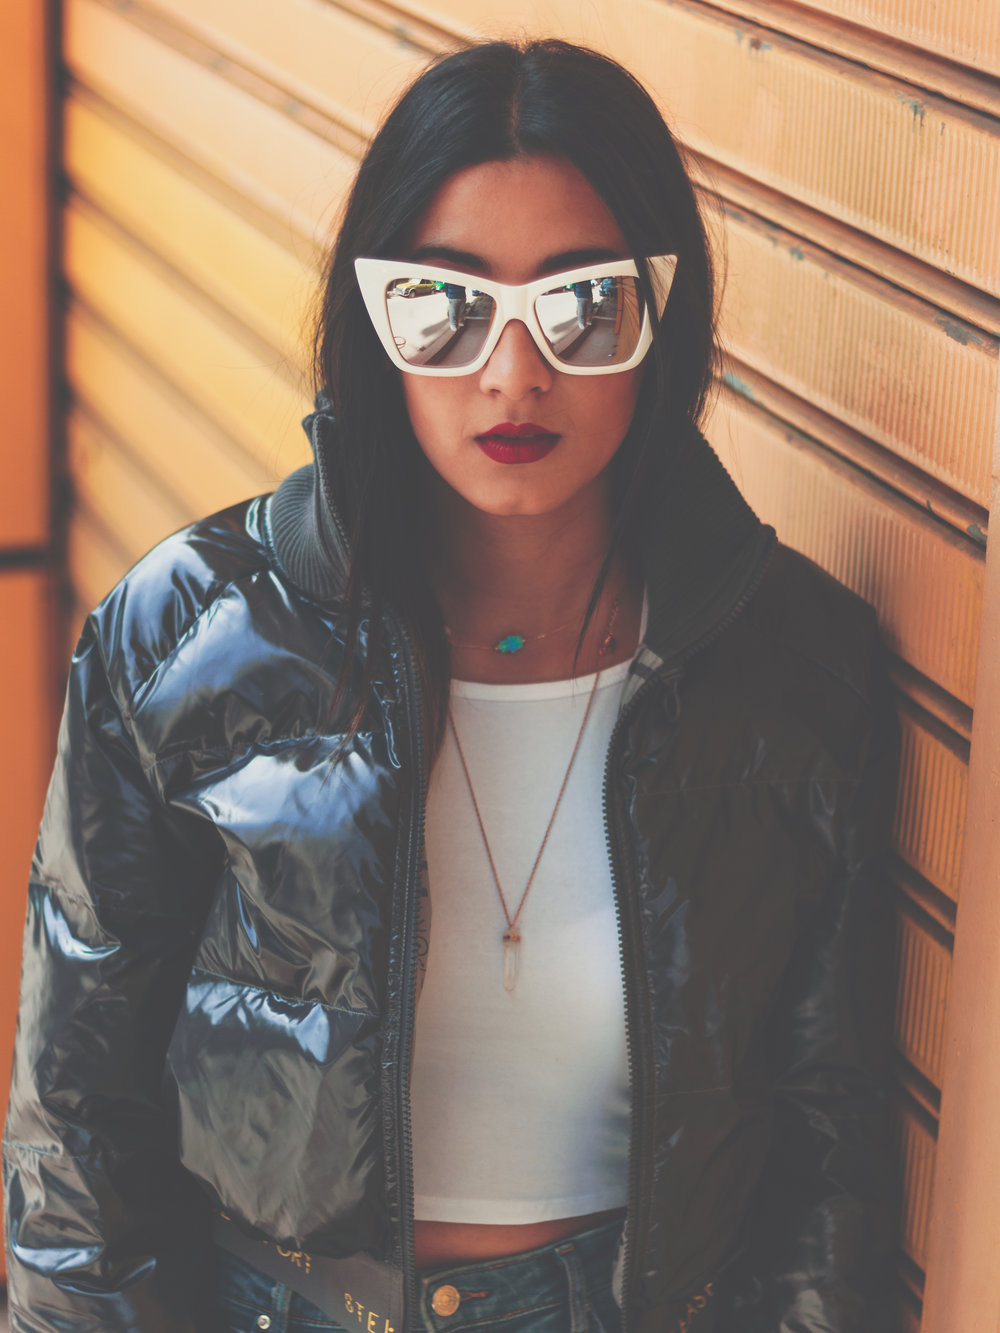 Quay Sunglasses ,  Zara jeans ,  Stella Mccartney Limited Edition for Adidas Women Collab jacket ,  Brandy Melville Crystal Pendant ,  MAC Viva Glam II Lipstick